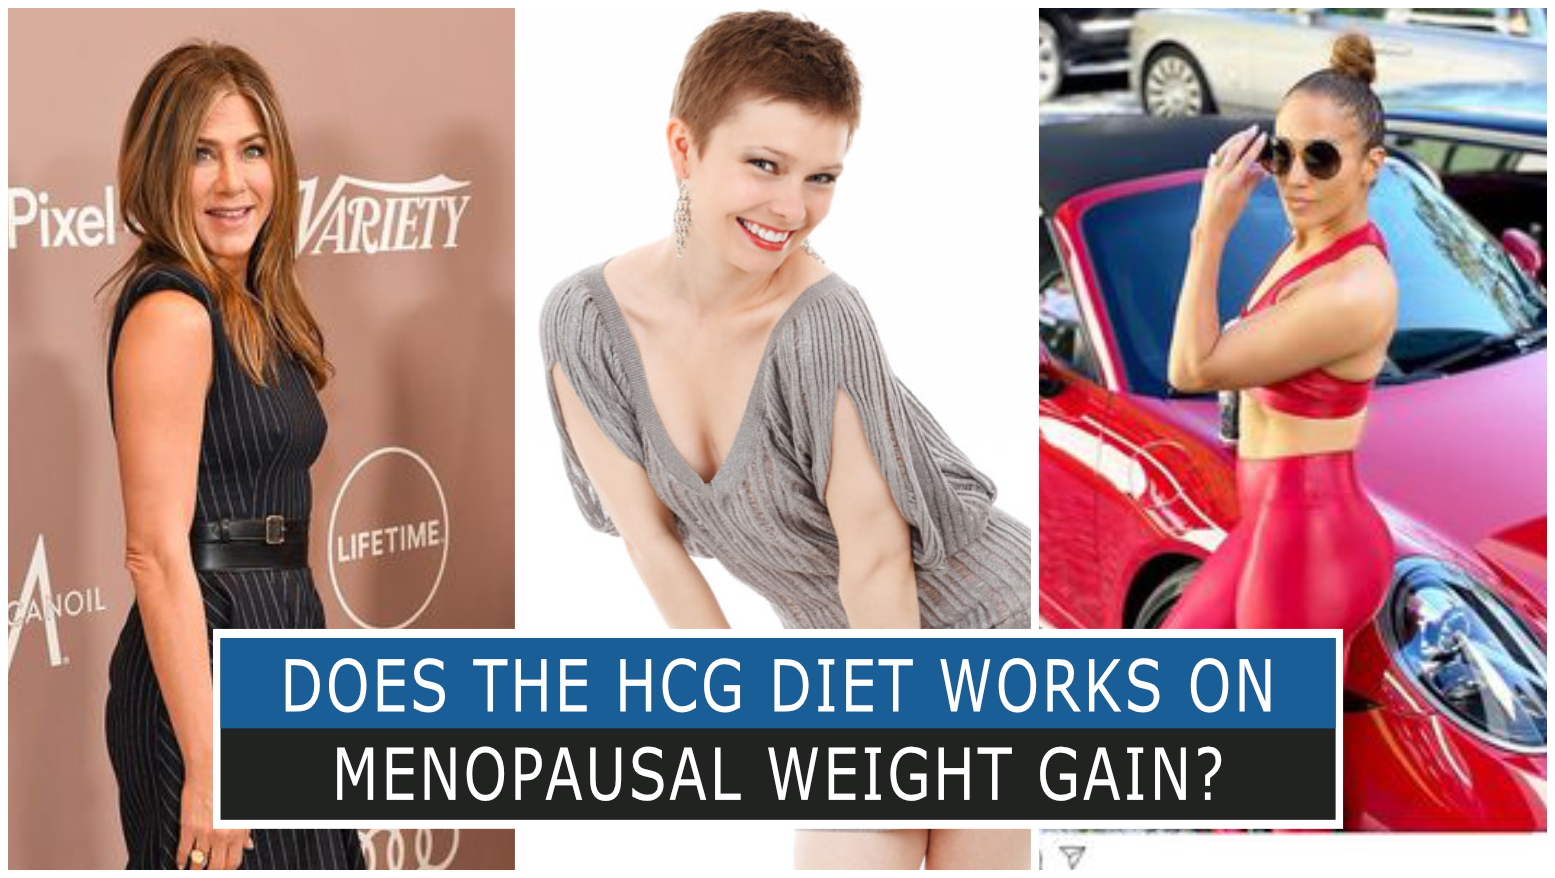 DOES THE HCG DIET WORKS ON MENOPAUSAL WEIGHT GAIN?